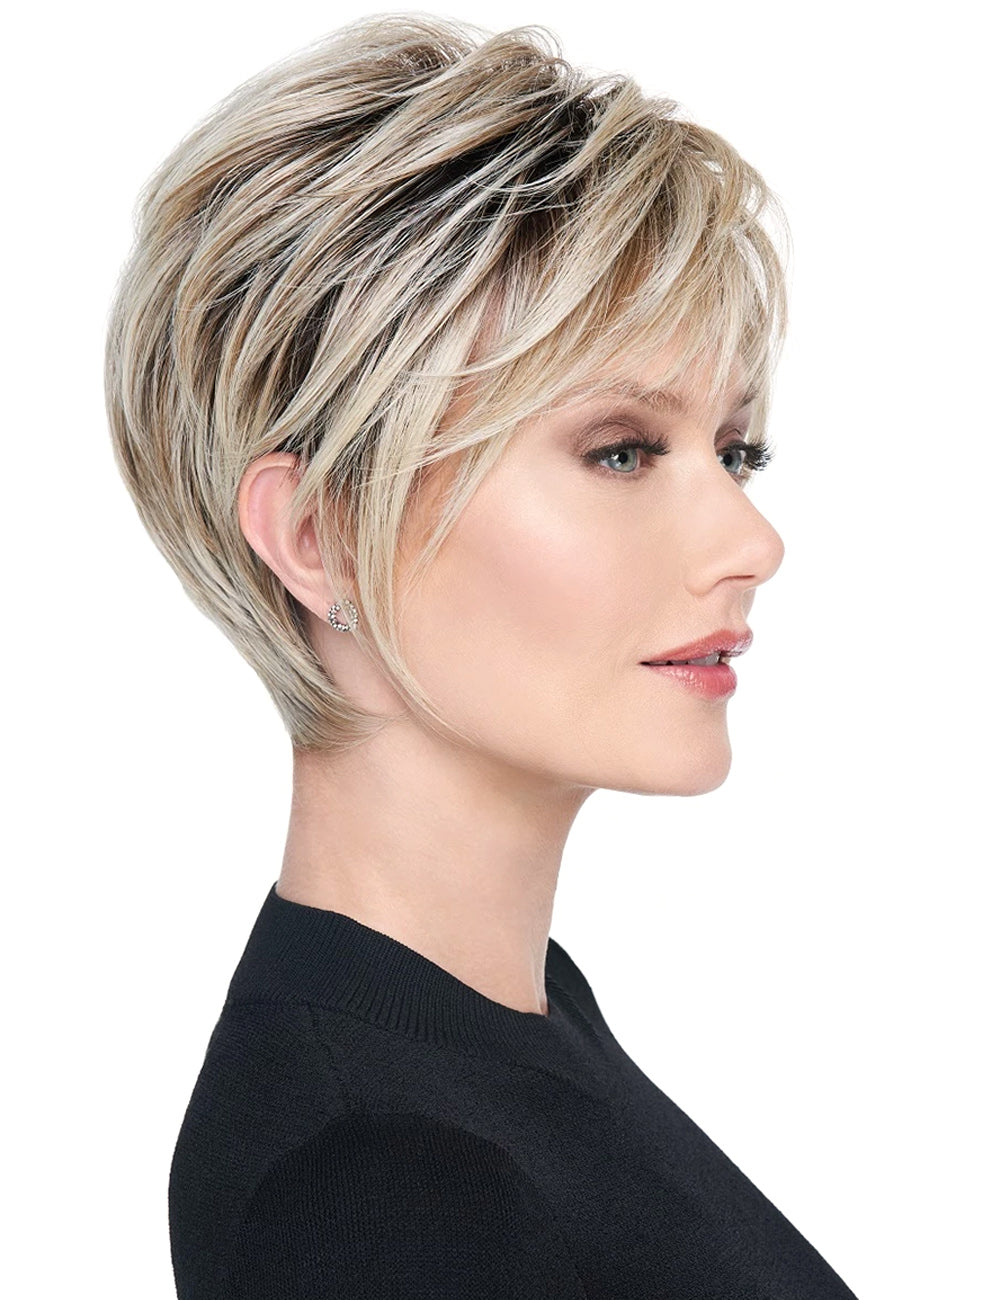 Short Pixie Cut Hairstyle Straight Women Wigs 8Inches Synthetic Hair